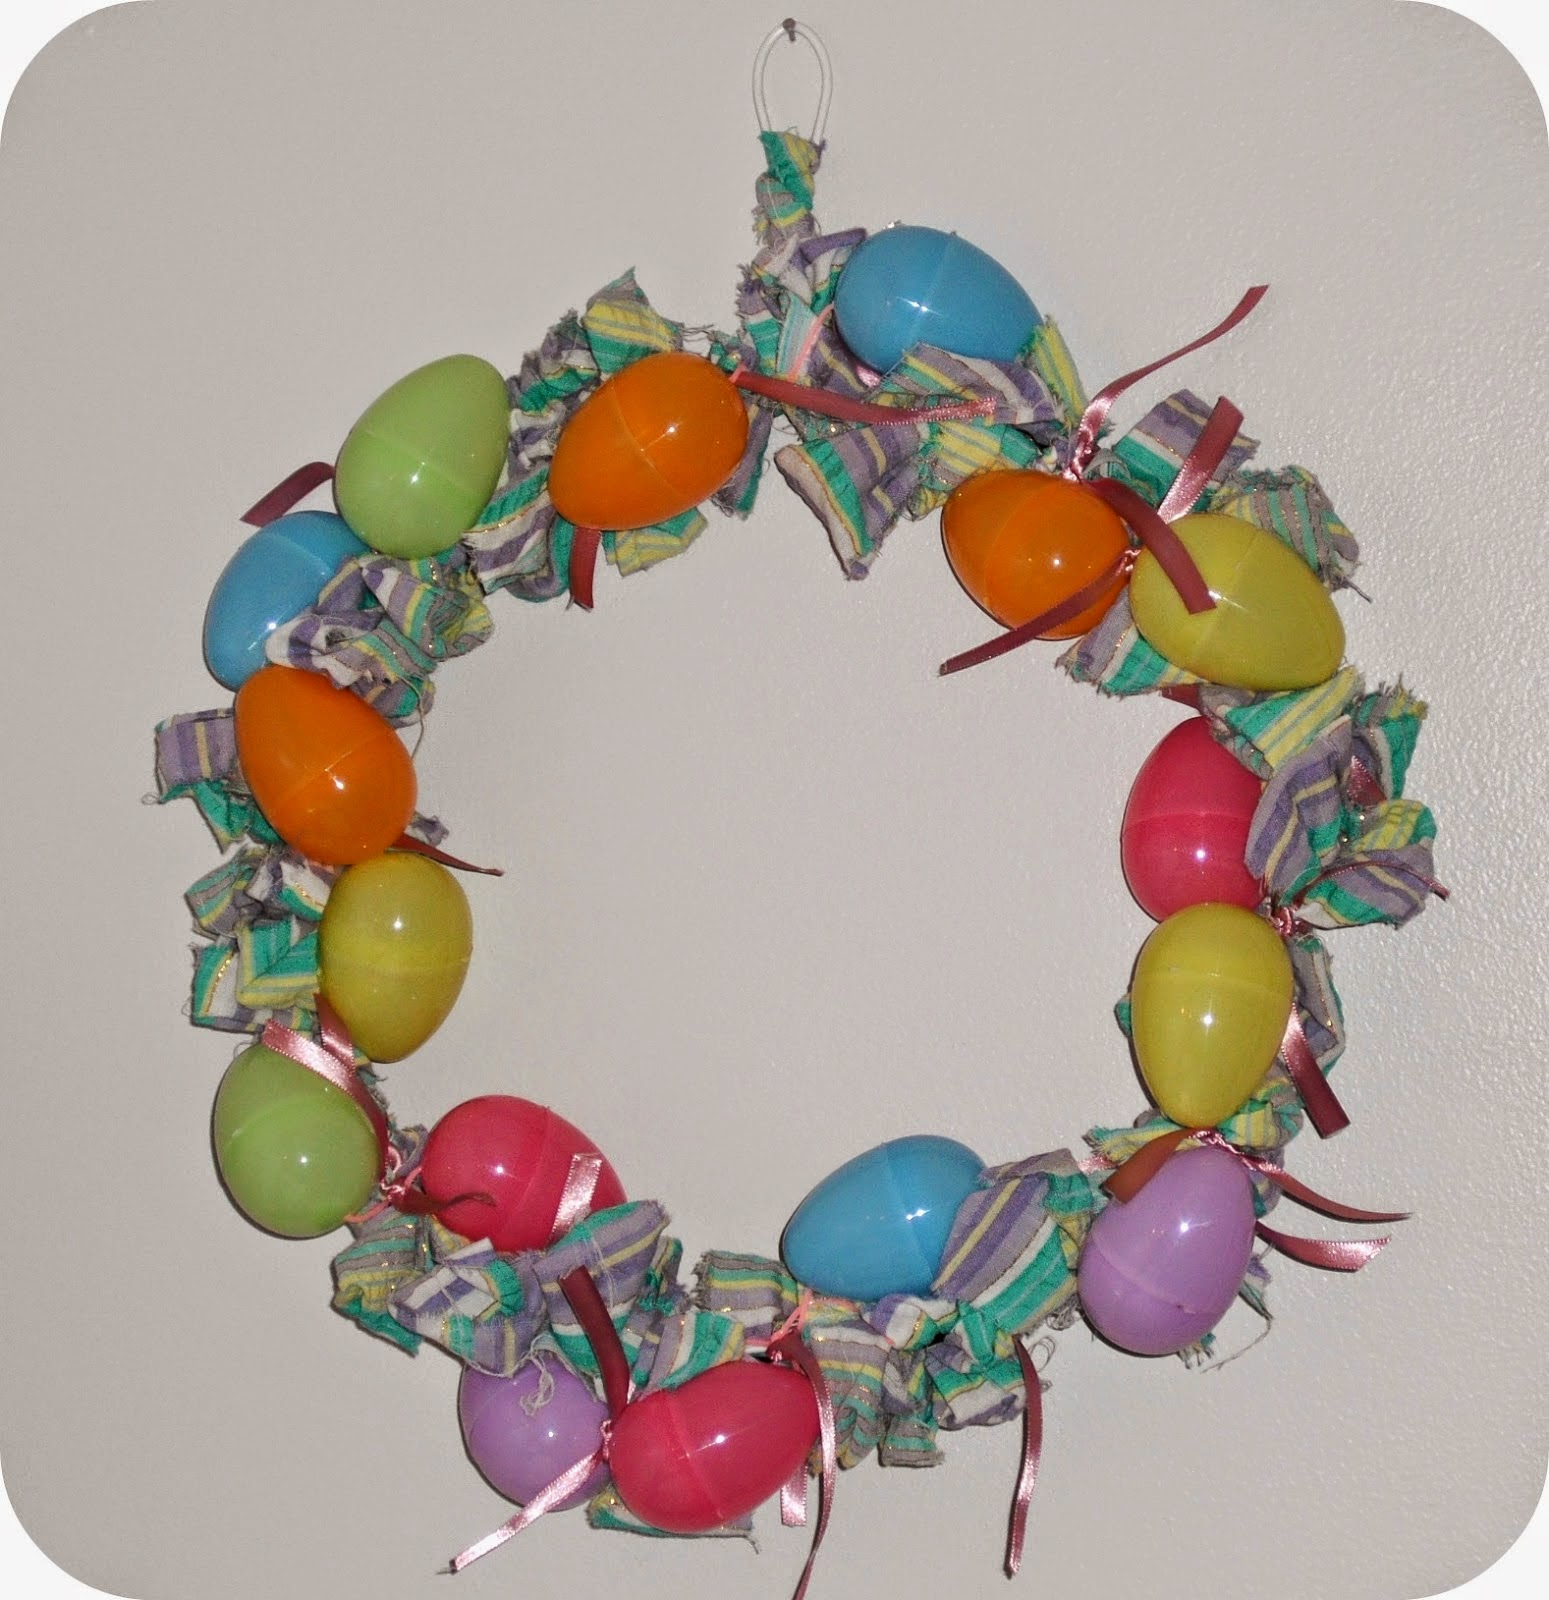 http://artsofeska.blogspot.com/2014/03/easter-egg-wreath.html